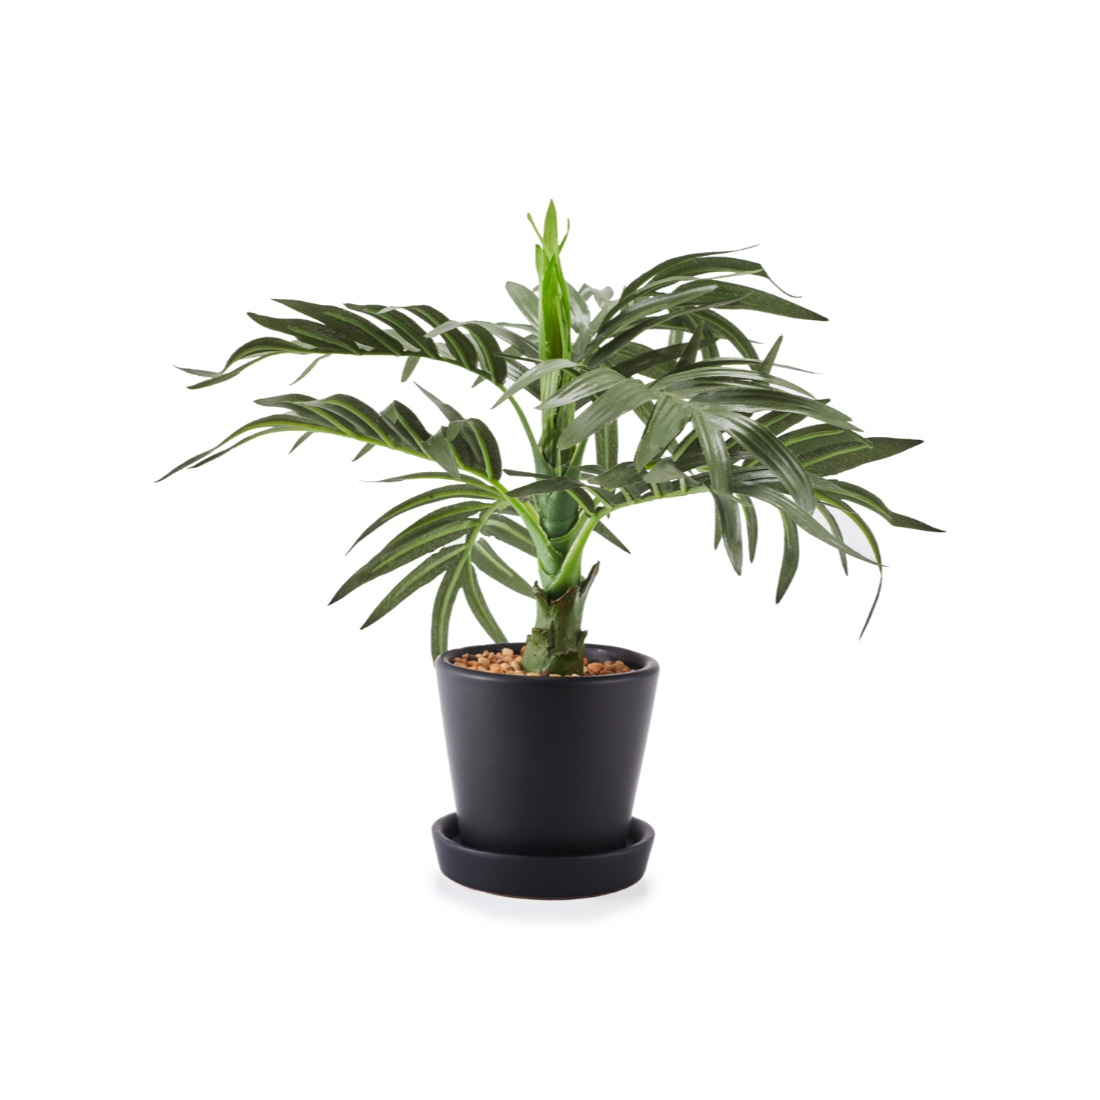 Sage Roystonea Small Wax Artificial Plants in Multicolor Colour by Living Essence